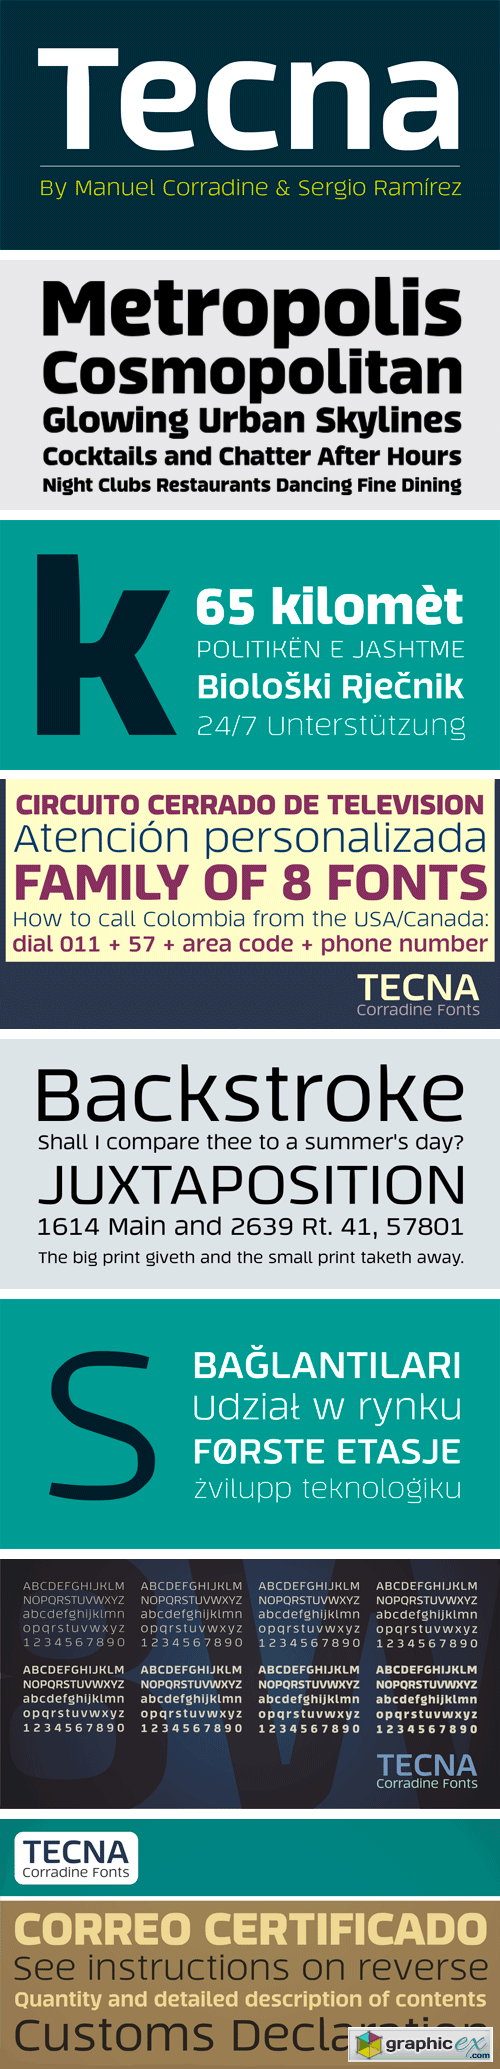 Tecna Font Family - 8 Fonts for $100